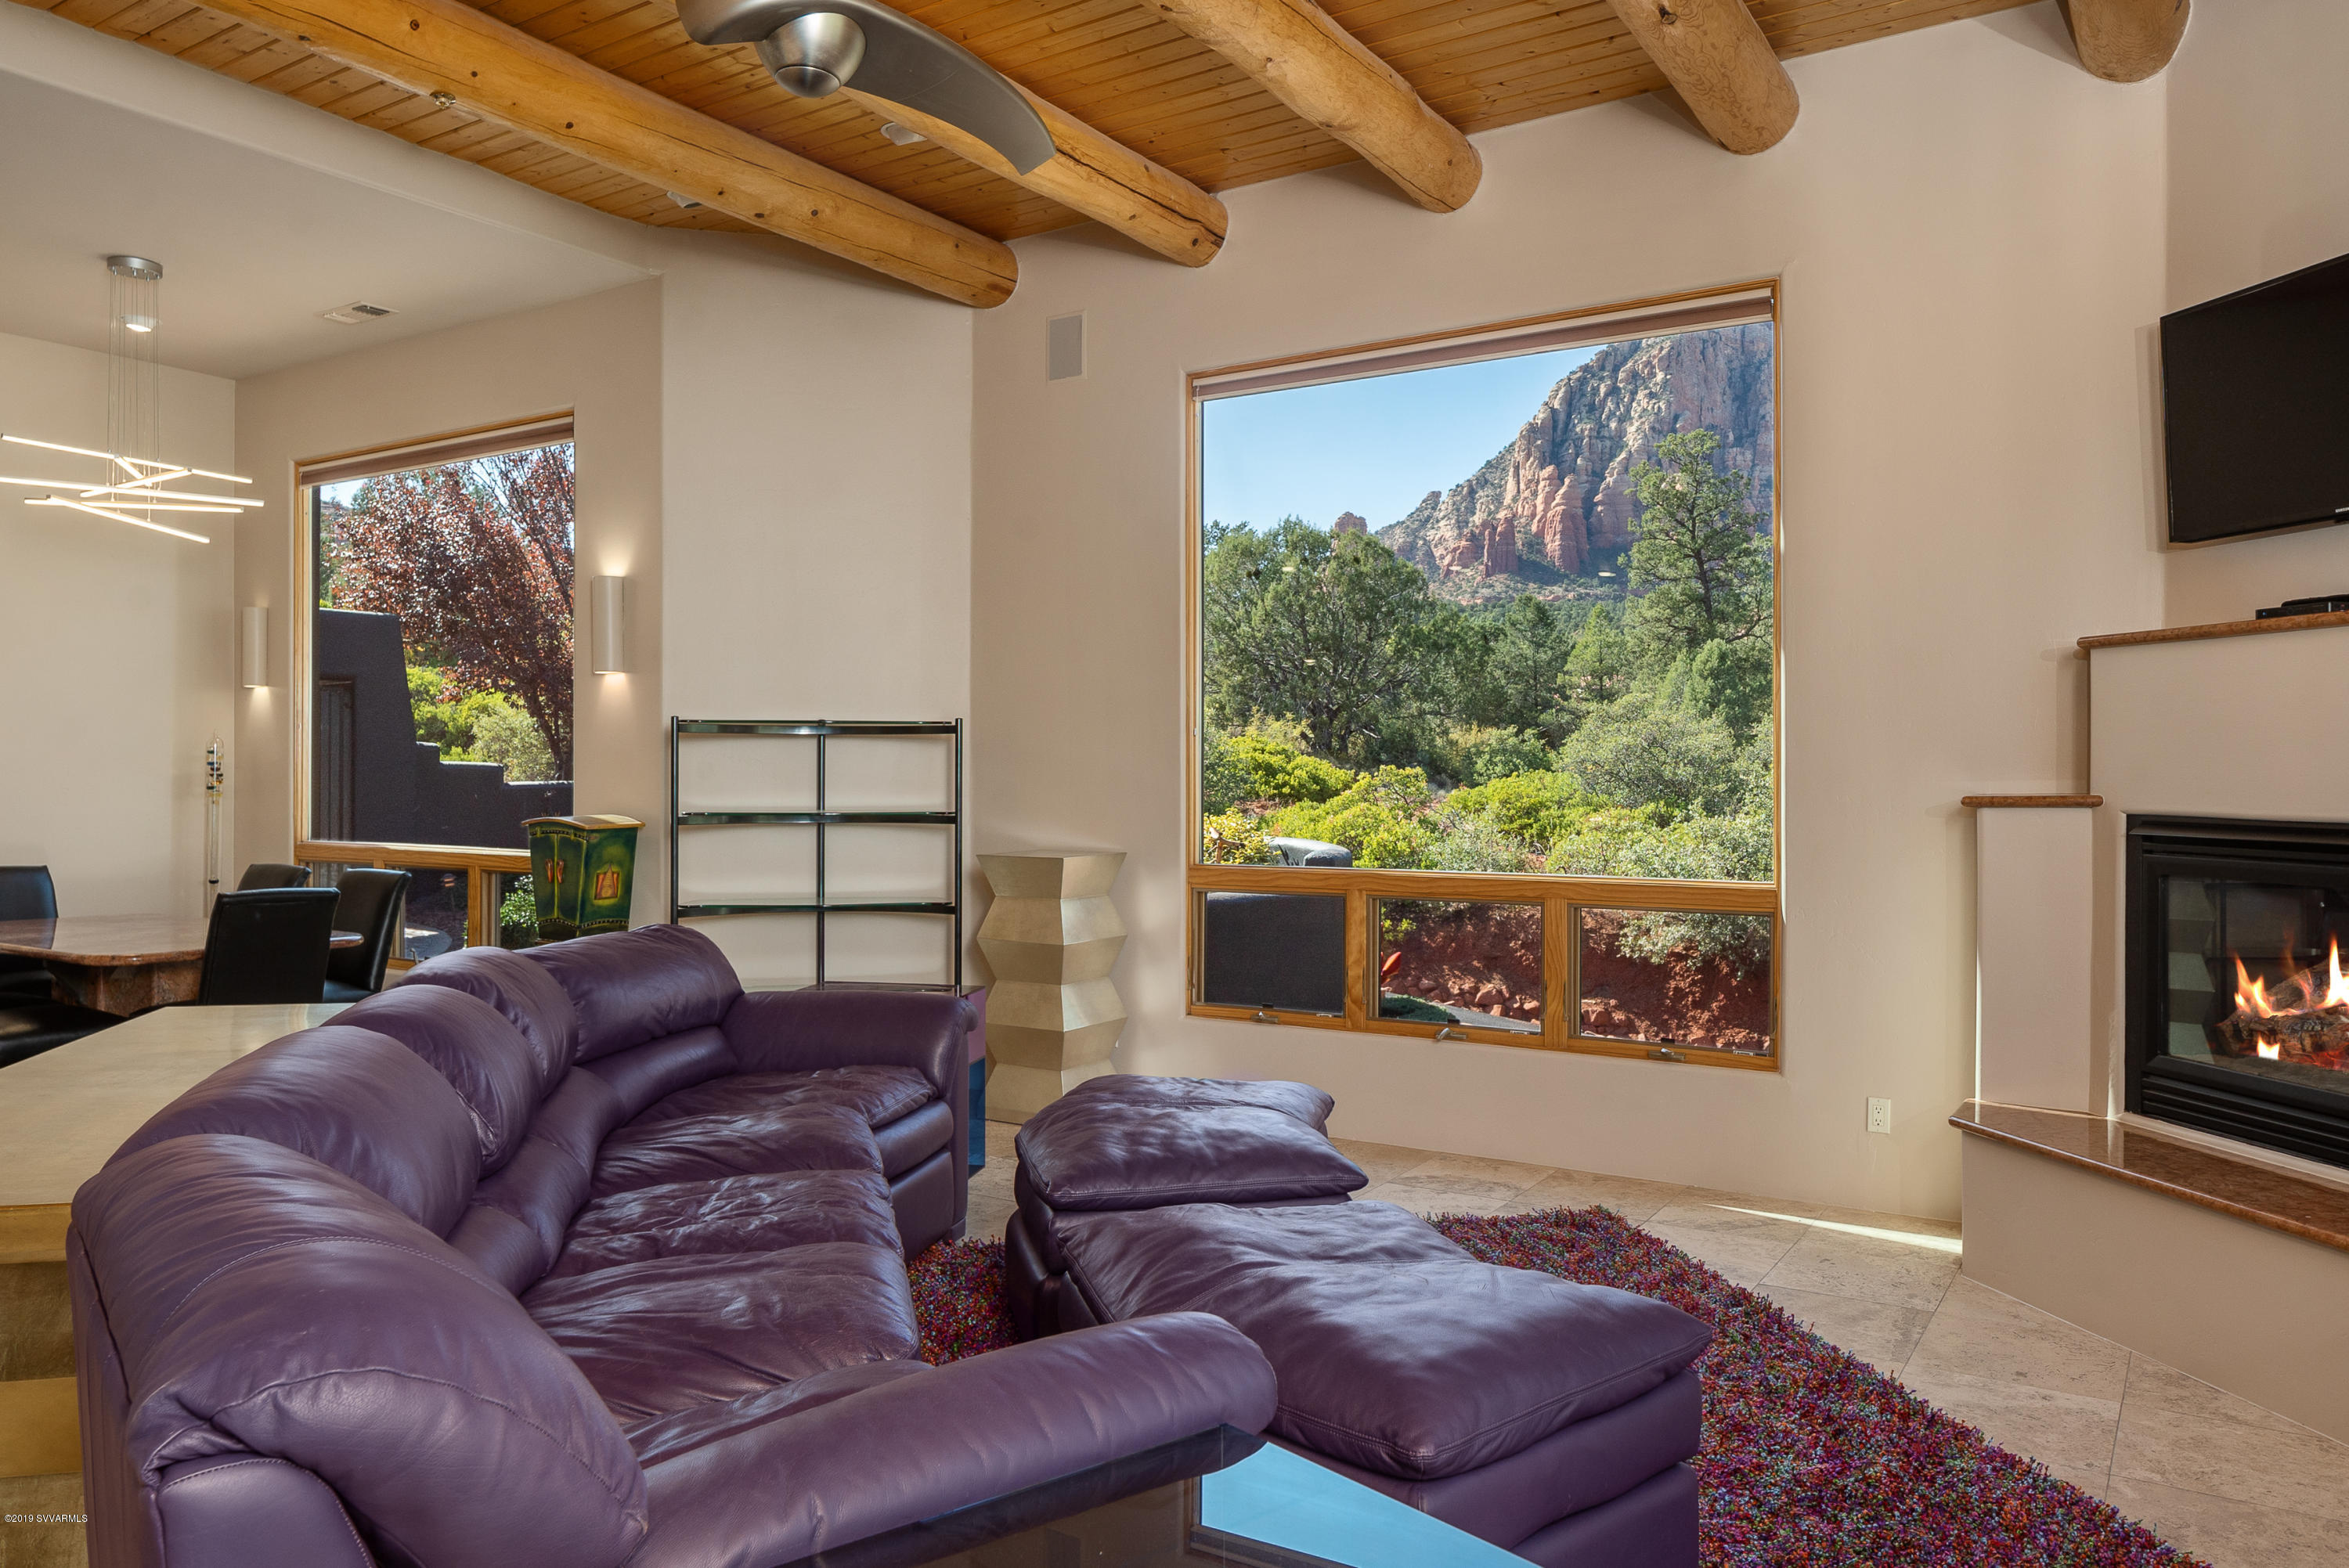 75 Enchanted Way Sedona, AZ 86336